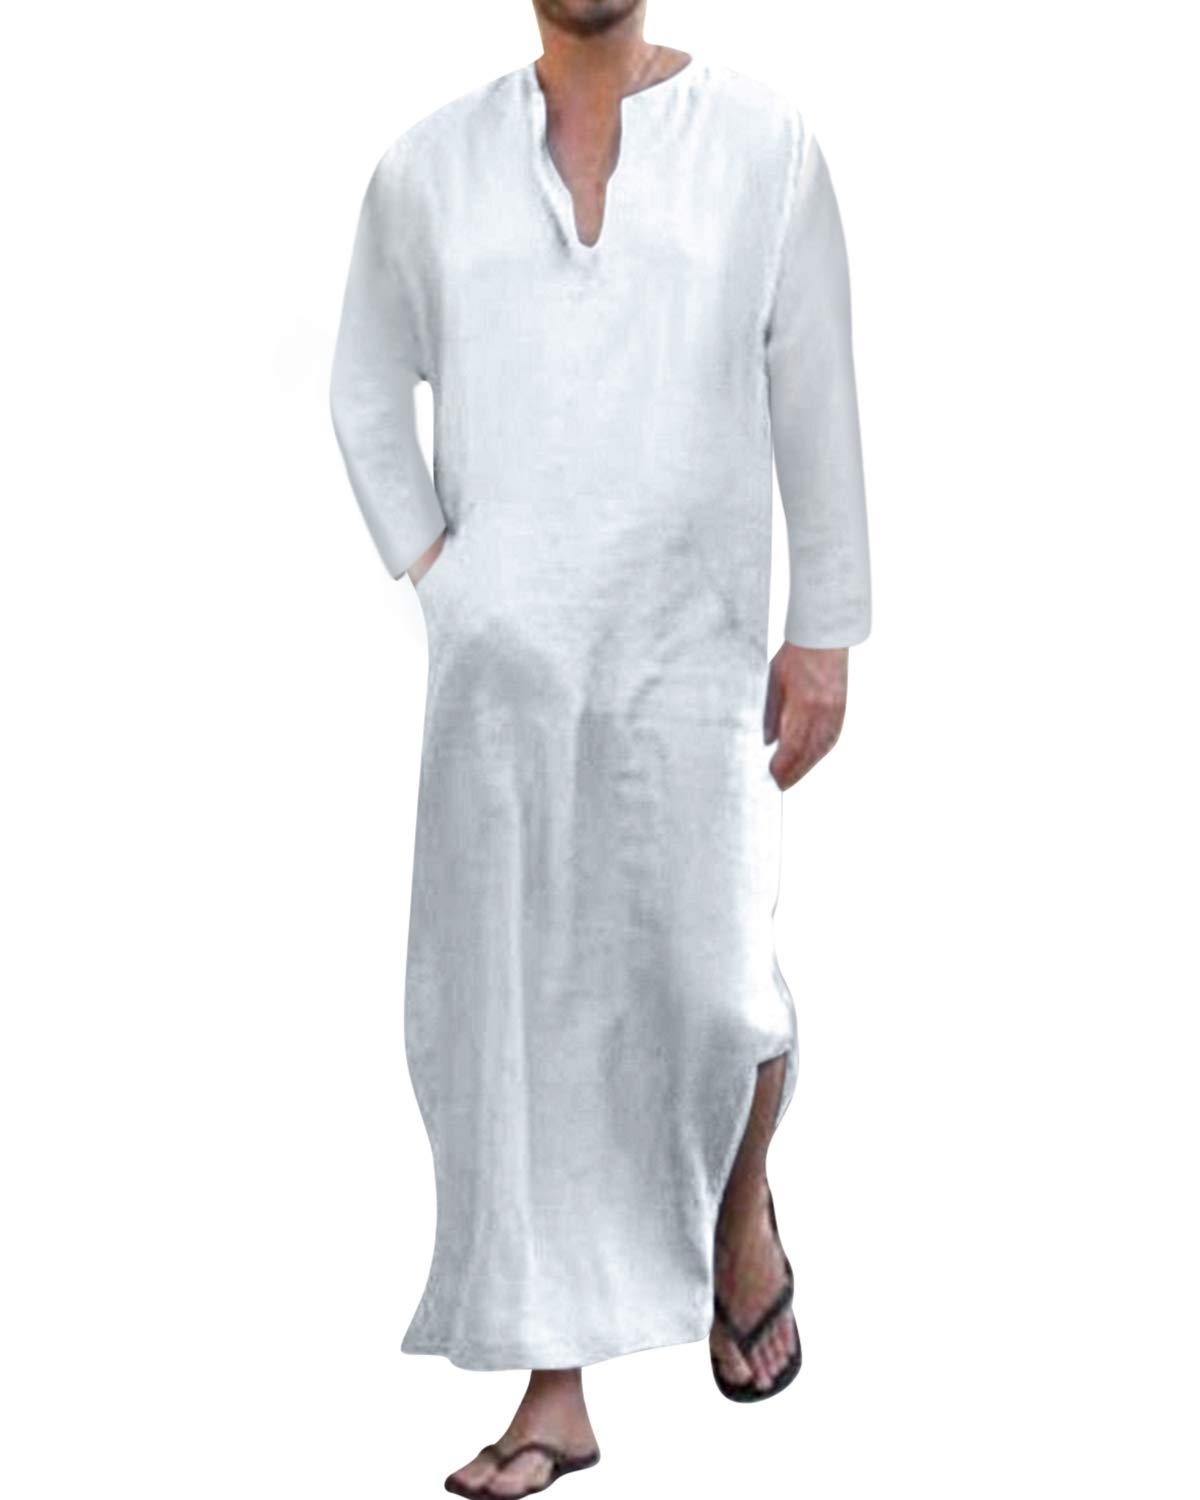 Jacansi Men's Cotton Long Sleeve V Neck Solid Side Slit Middle East Long Thobe White #1 XL by Jacansi